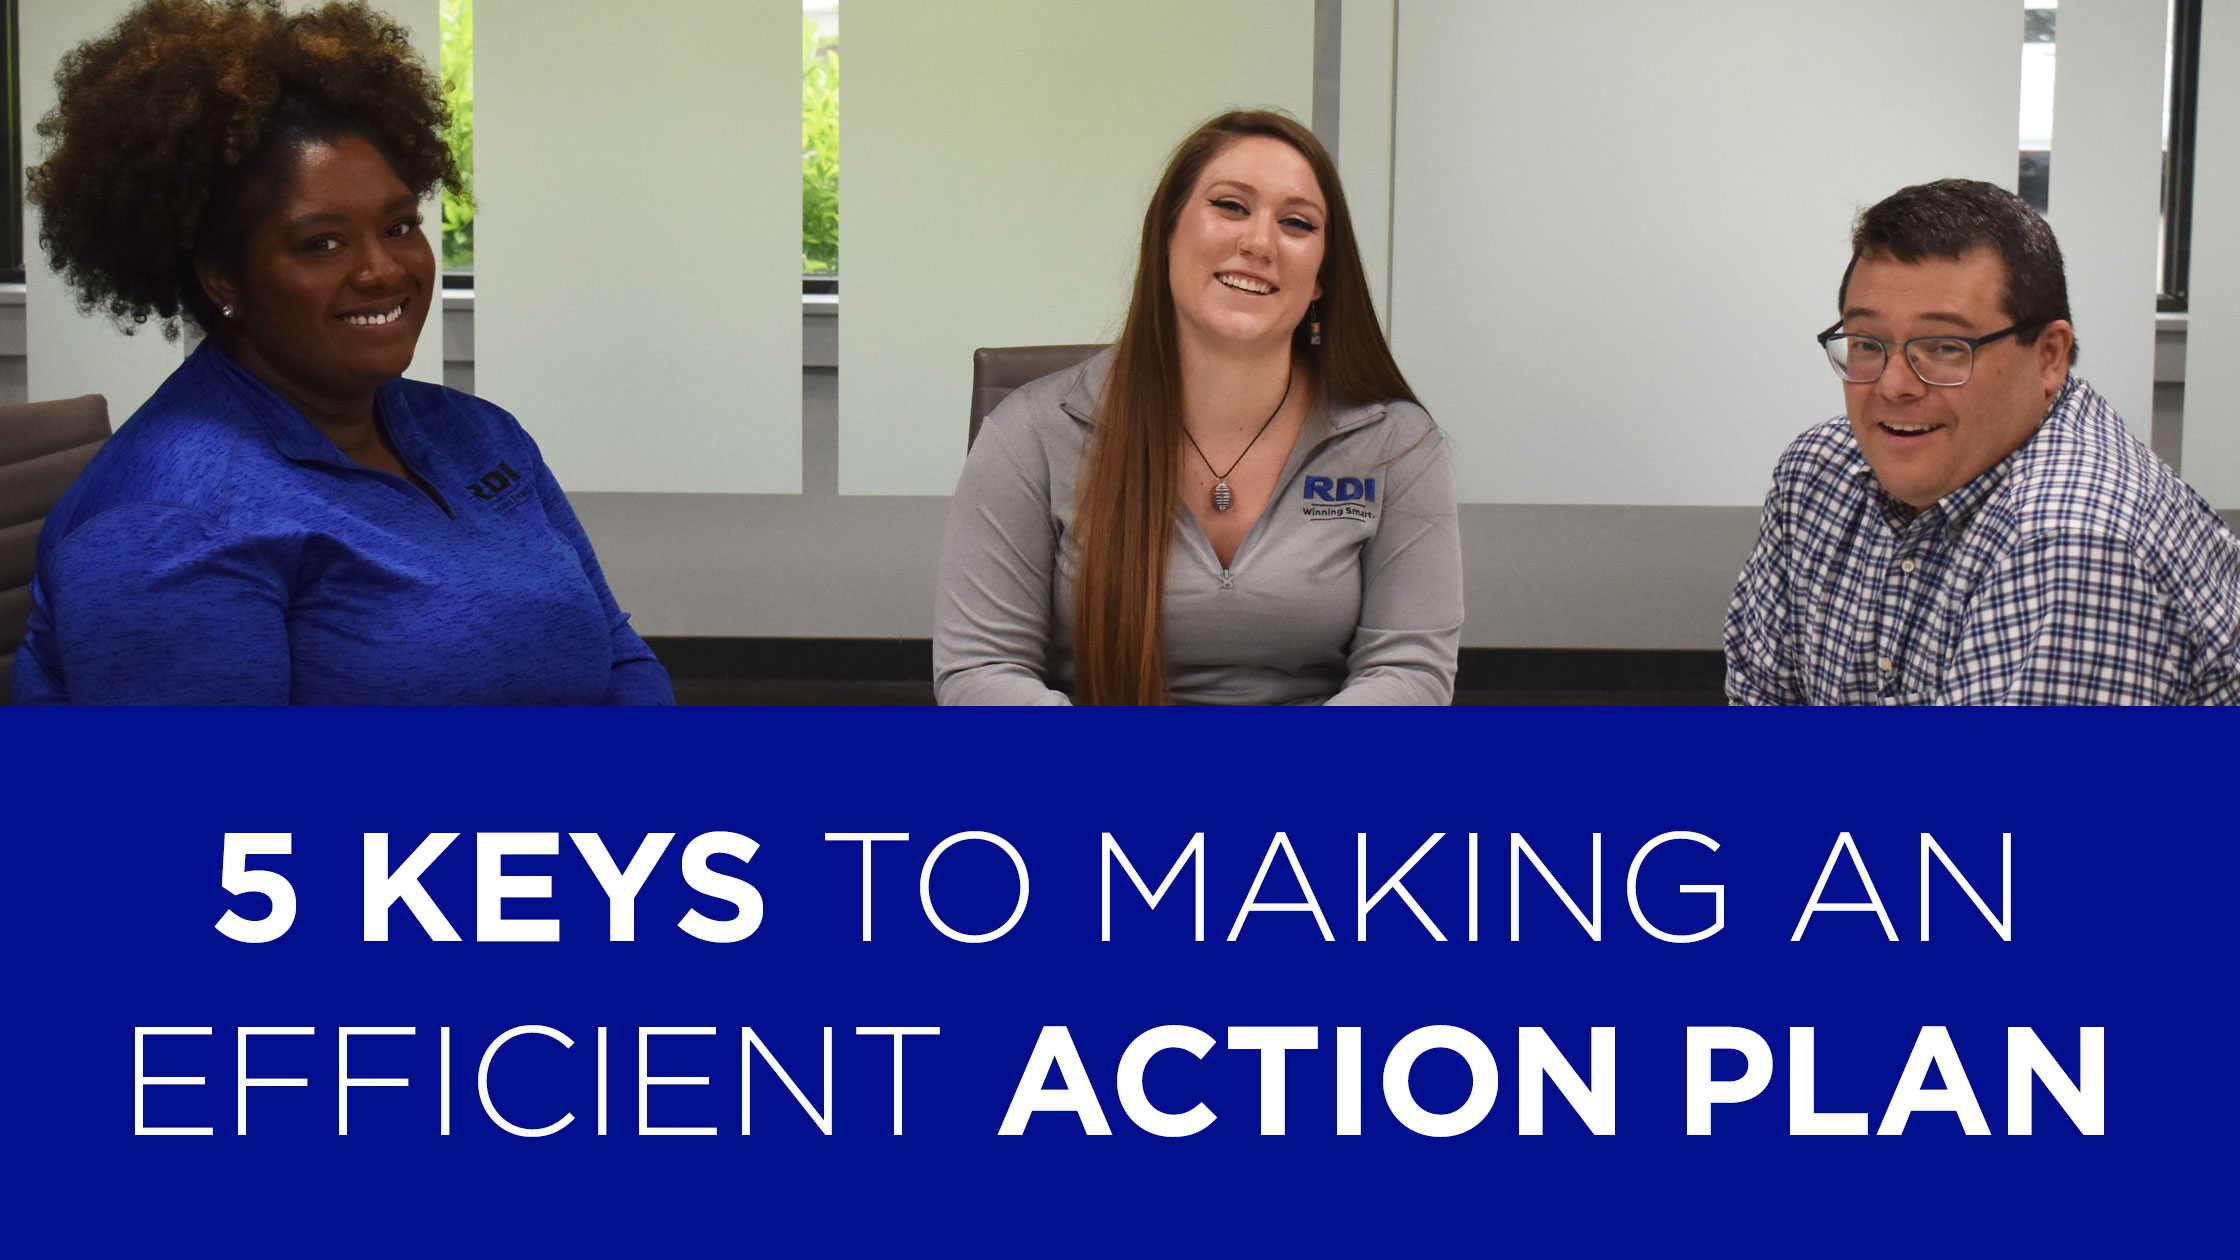 RDI Corporation - 5 Keys to making an efficient action plan